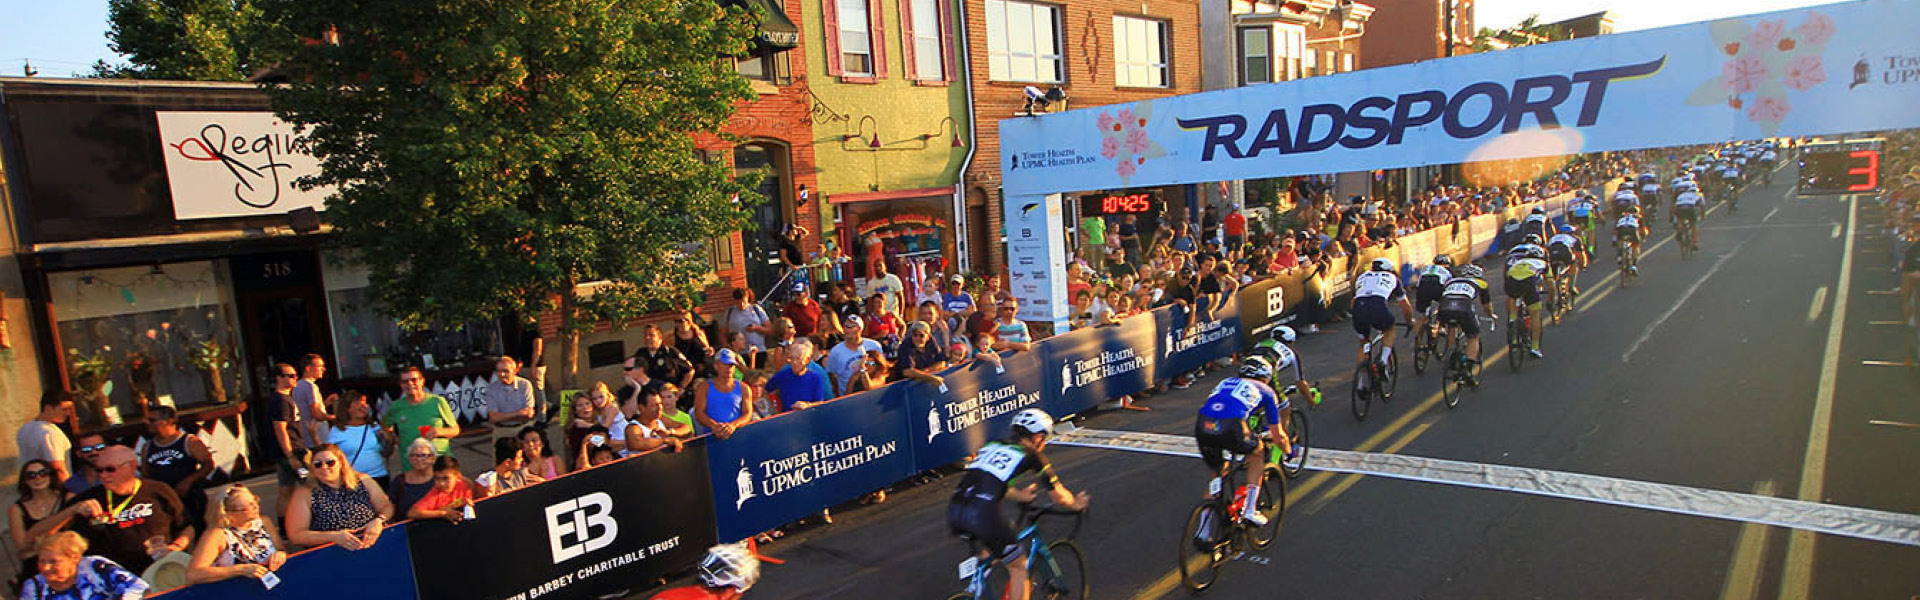 Bikers race on Penn Avenue in West Reading for the Reading Radsport